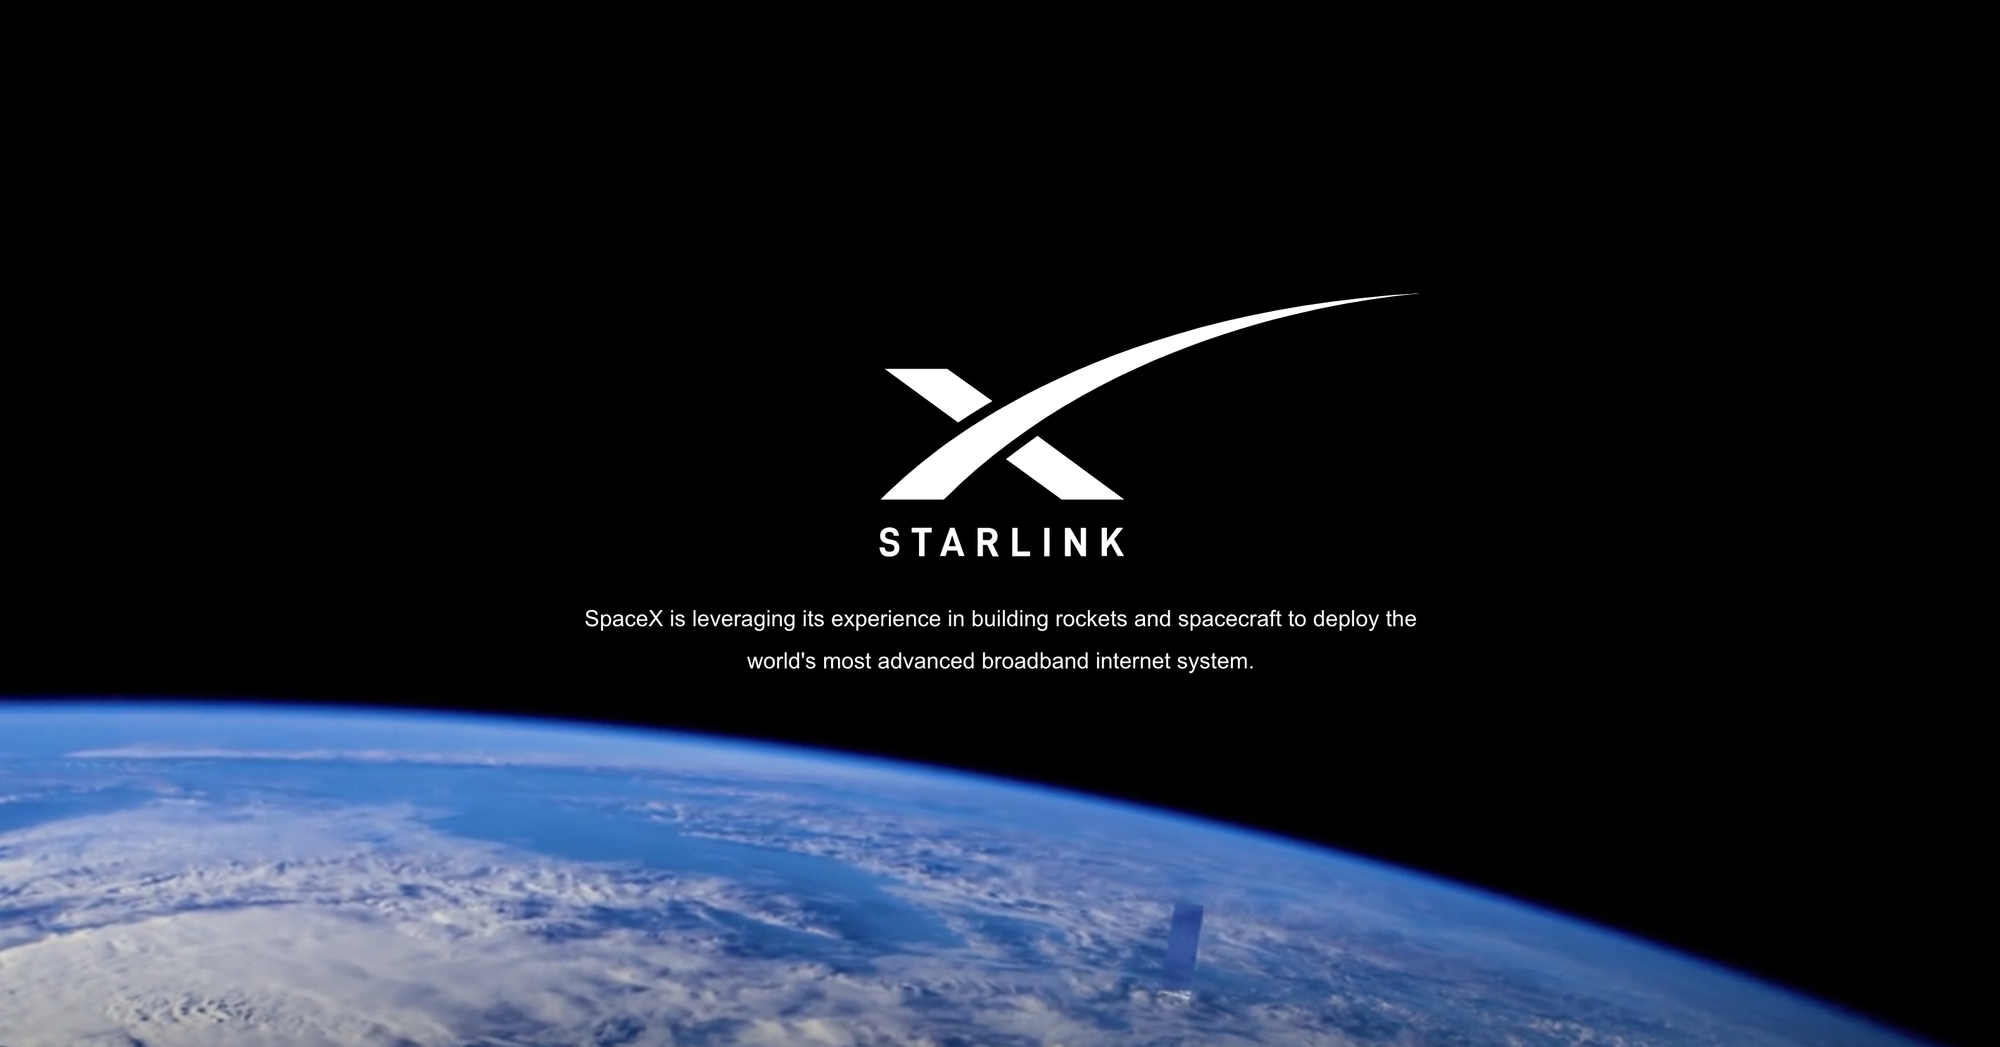 SpaceX's New FCC Filing Requests To Operate Starlink 'In Moving Vehicles, Vessels & Aircraft'